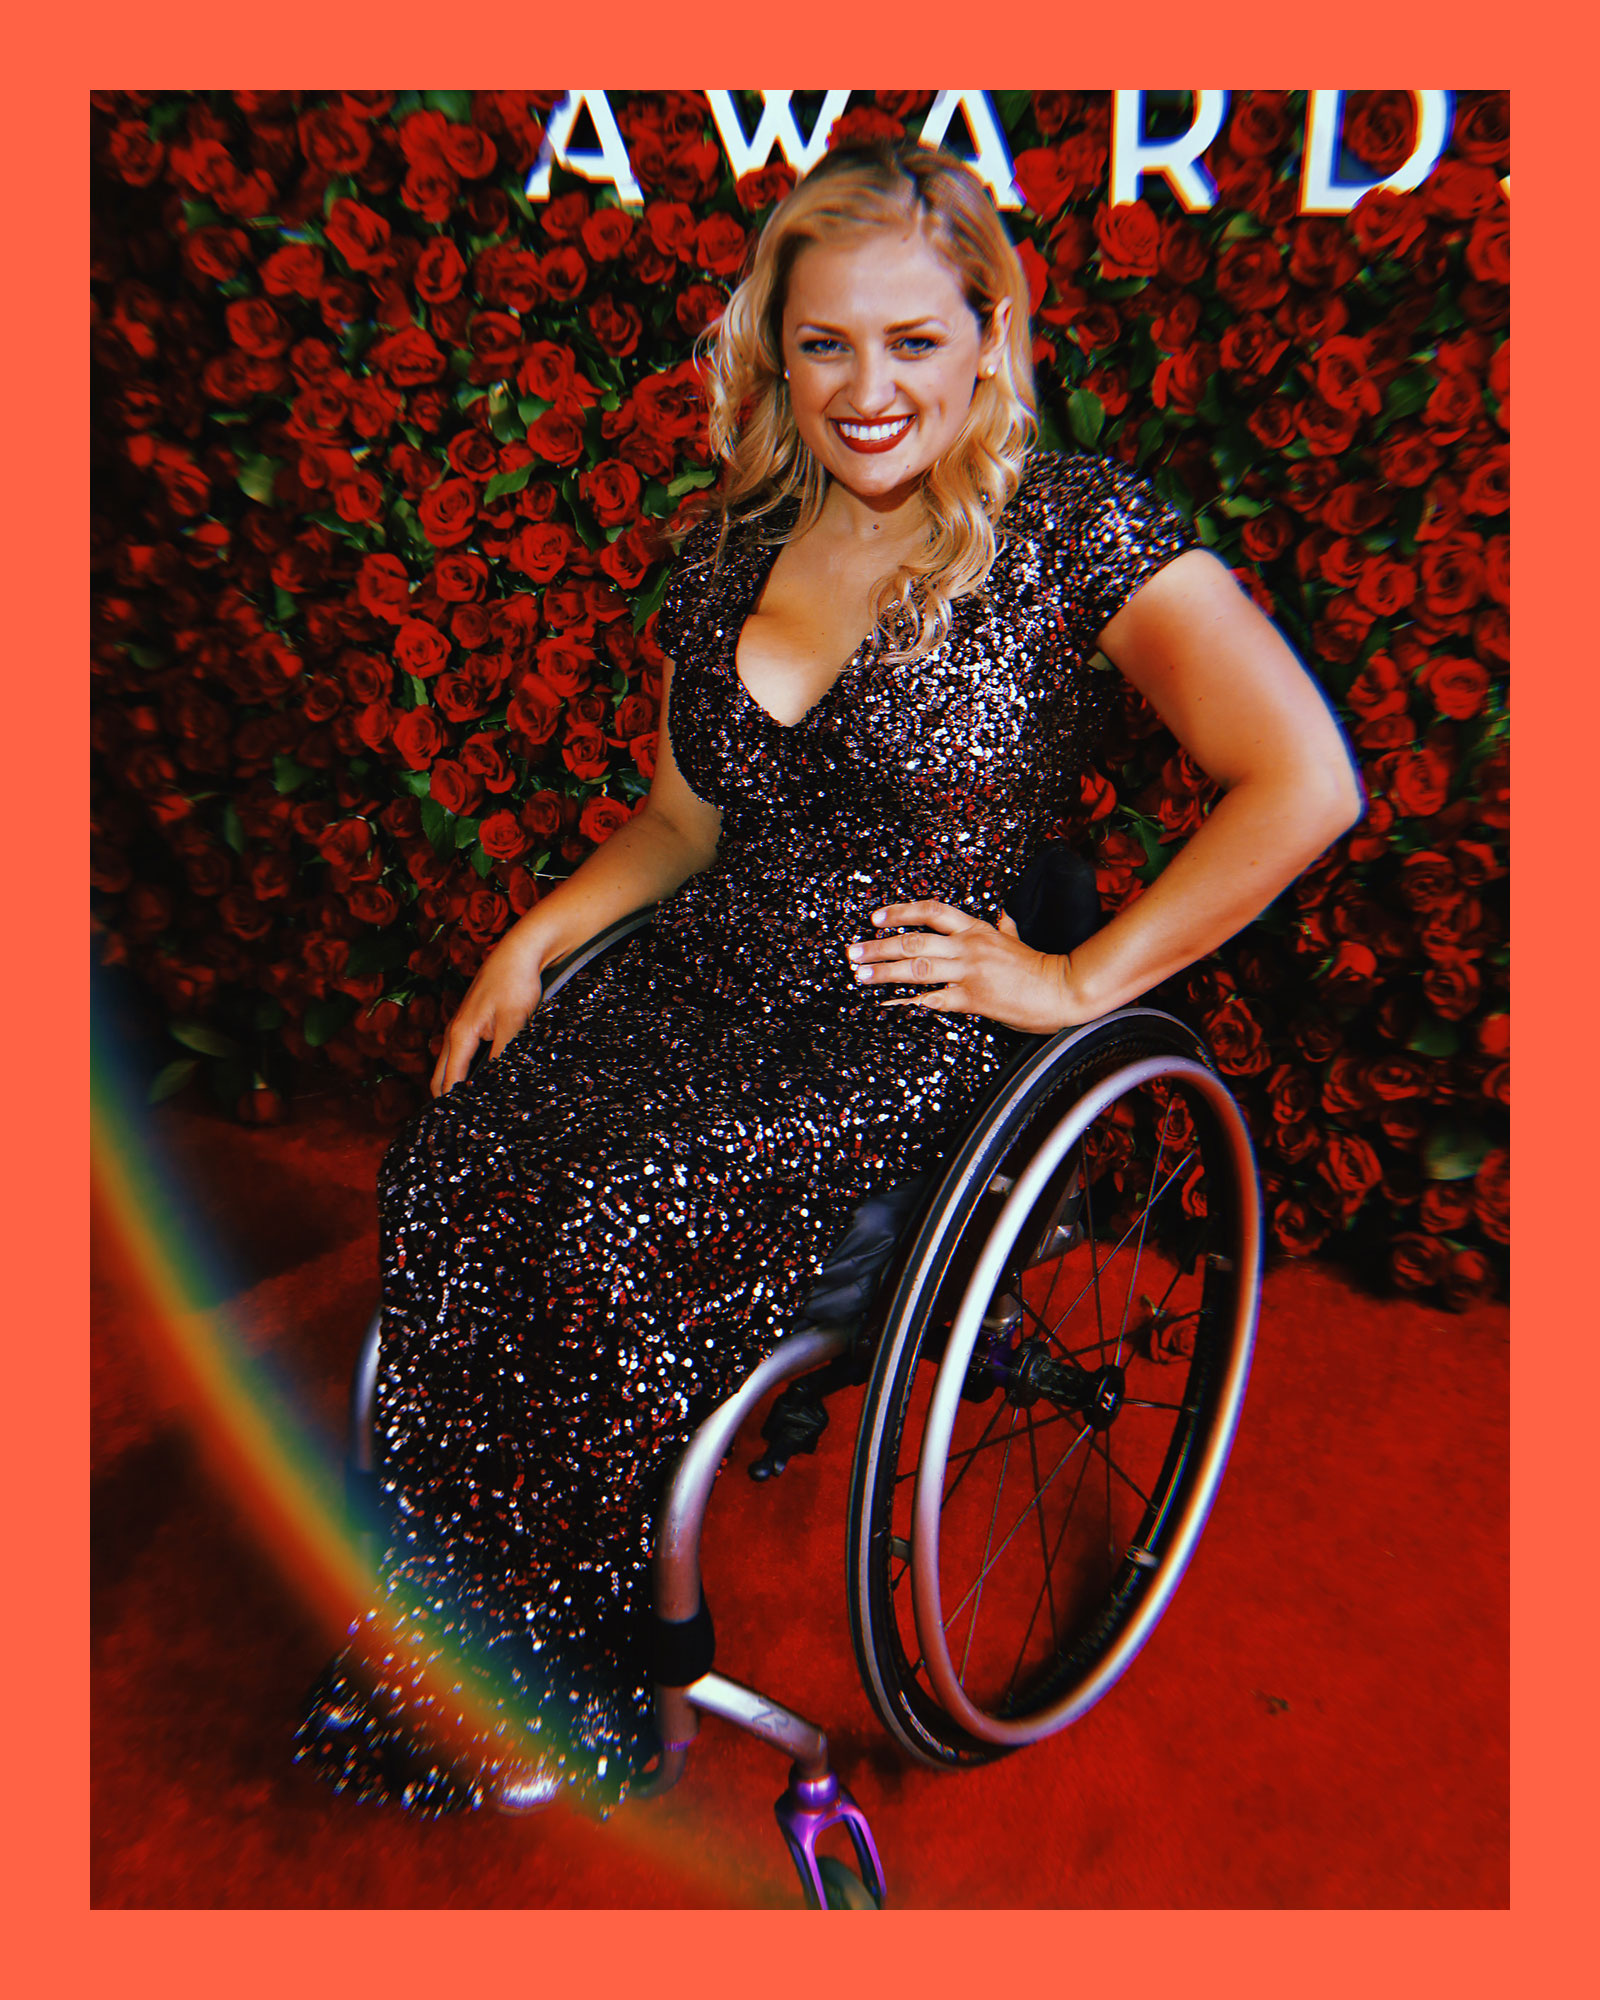 photo of actress Ali Stroker, a white, blonde woman wearing a long, v-neck sequined dress, sitting in her wheelchair on a redcarpet, and smiling in front of a wall of red roses